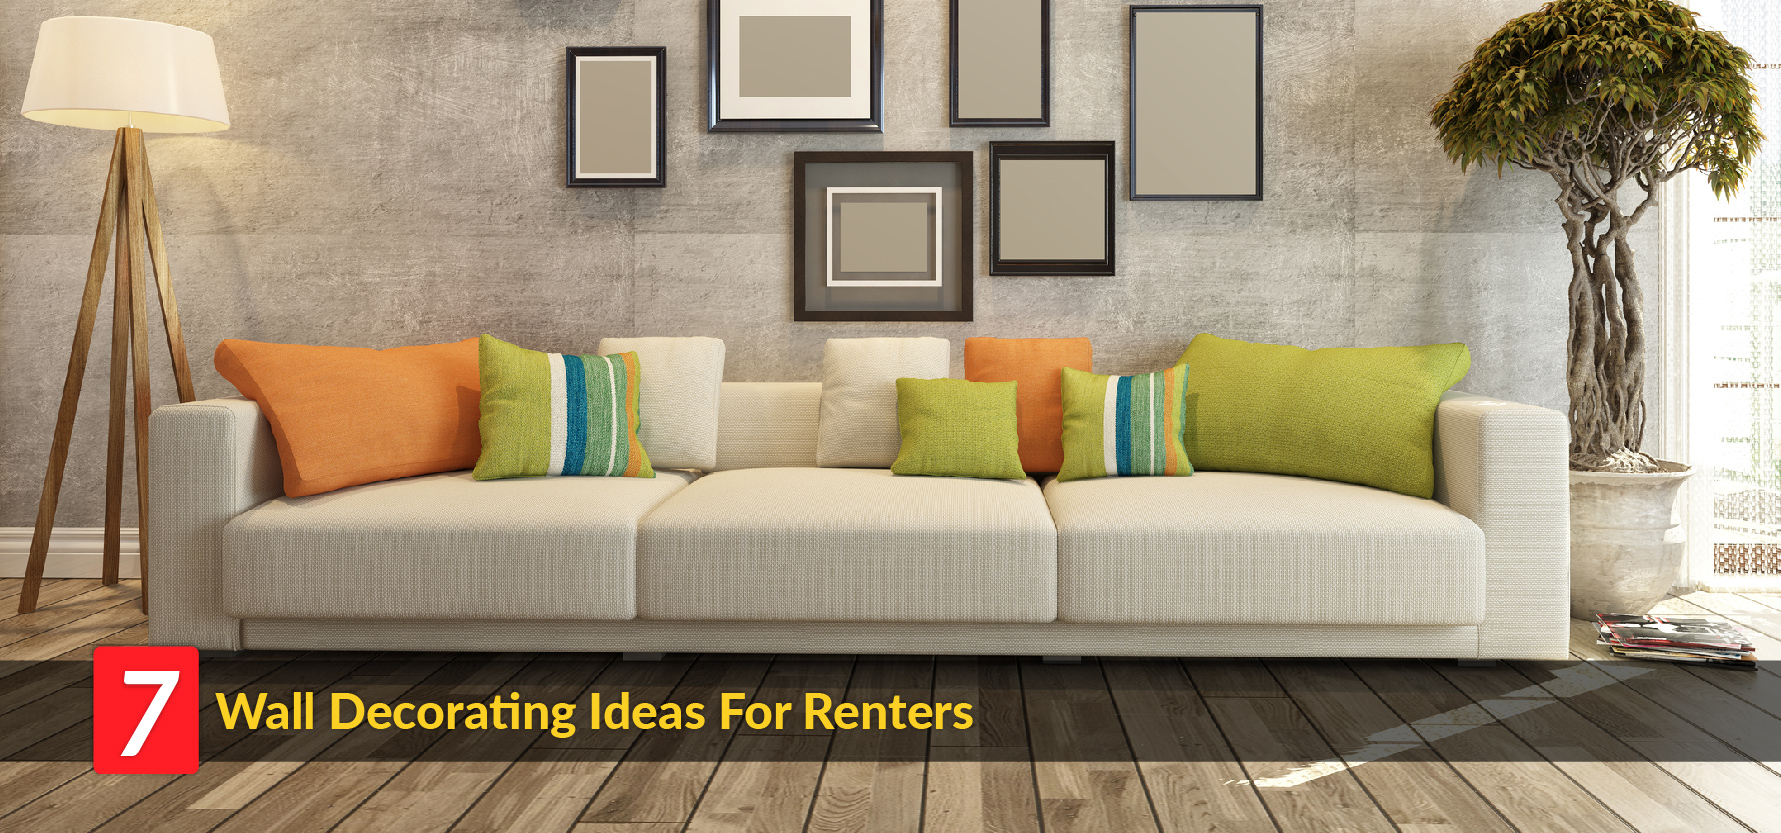 7 Wall Decorating Ideas For Renters